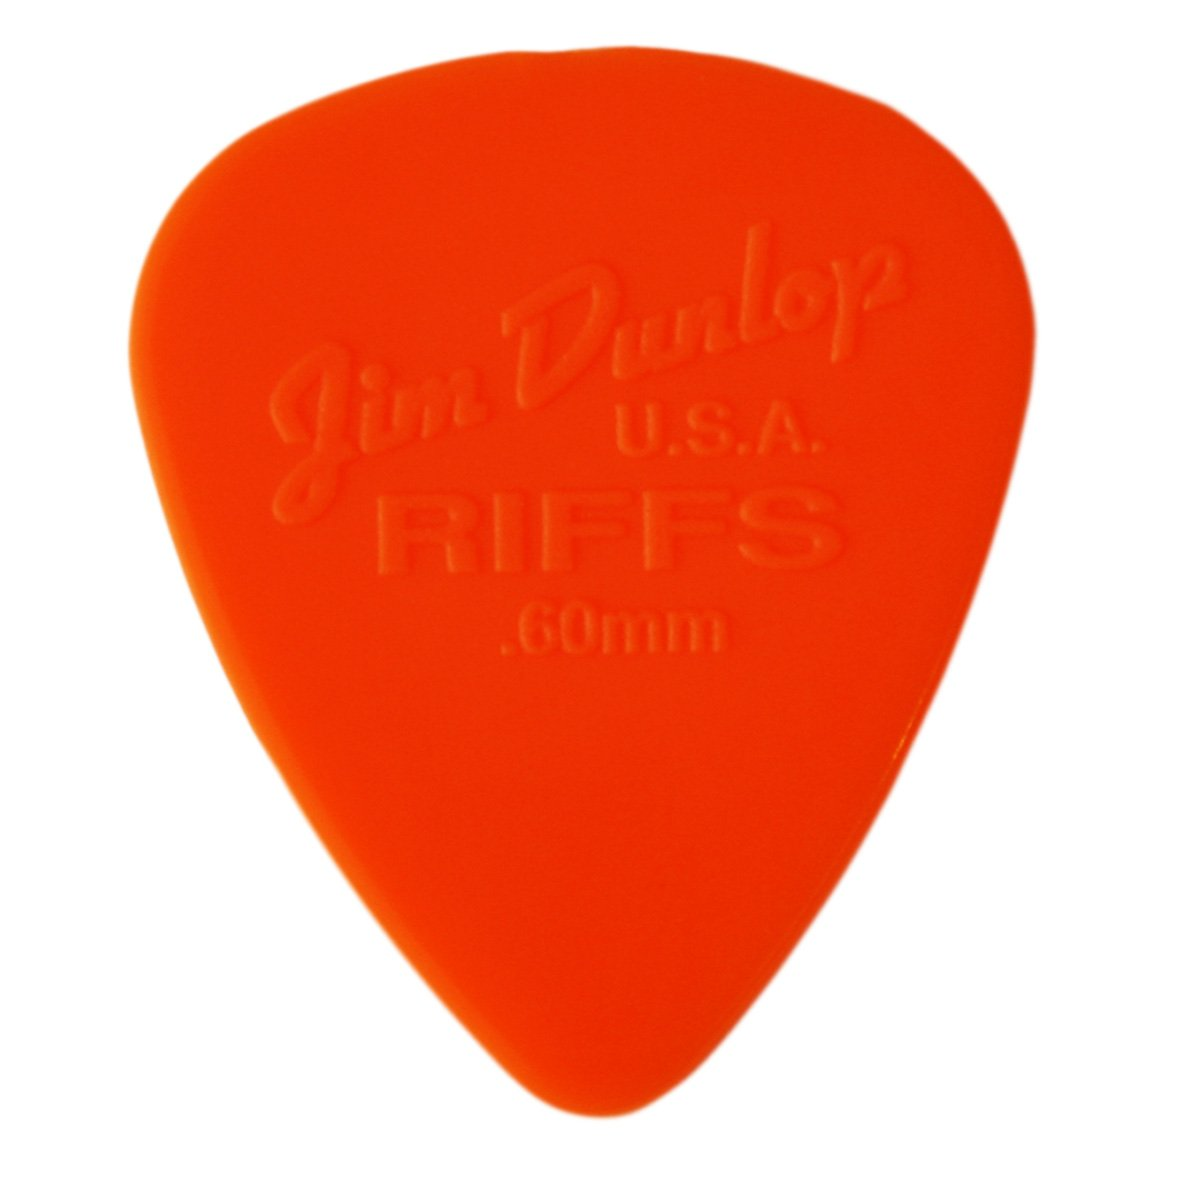 12 púas para guitarra Dunlop Riffs de 0,60 mm, color naranja en una práctica lata Dirty Riffs